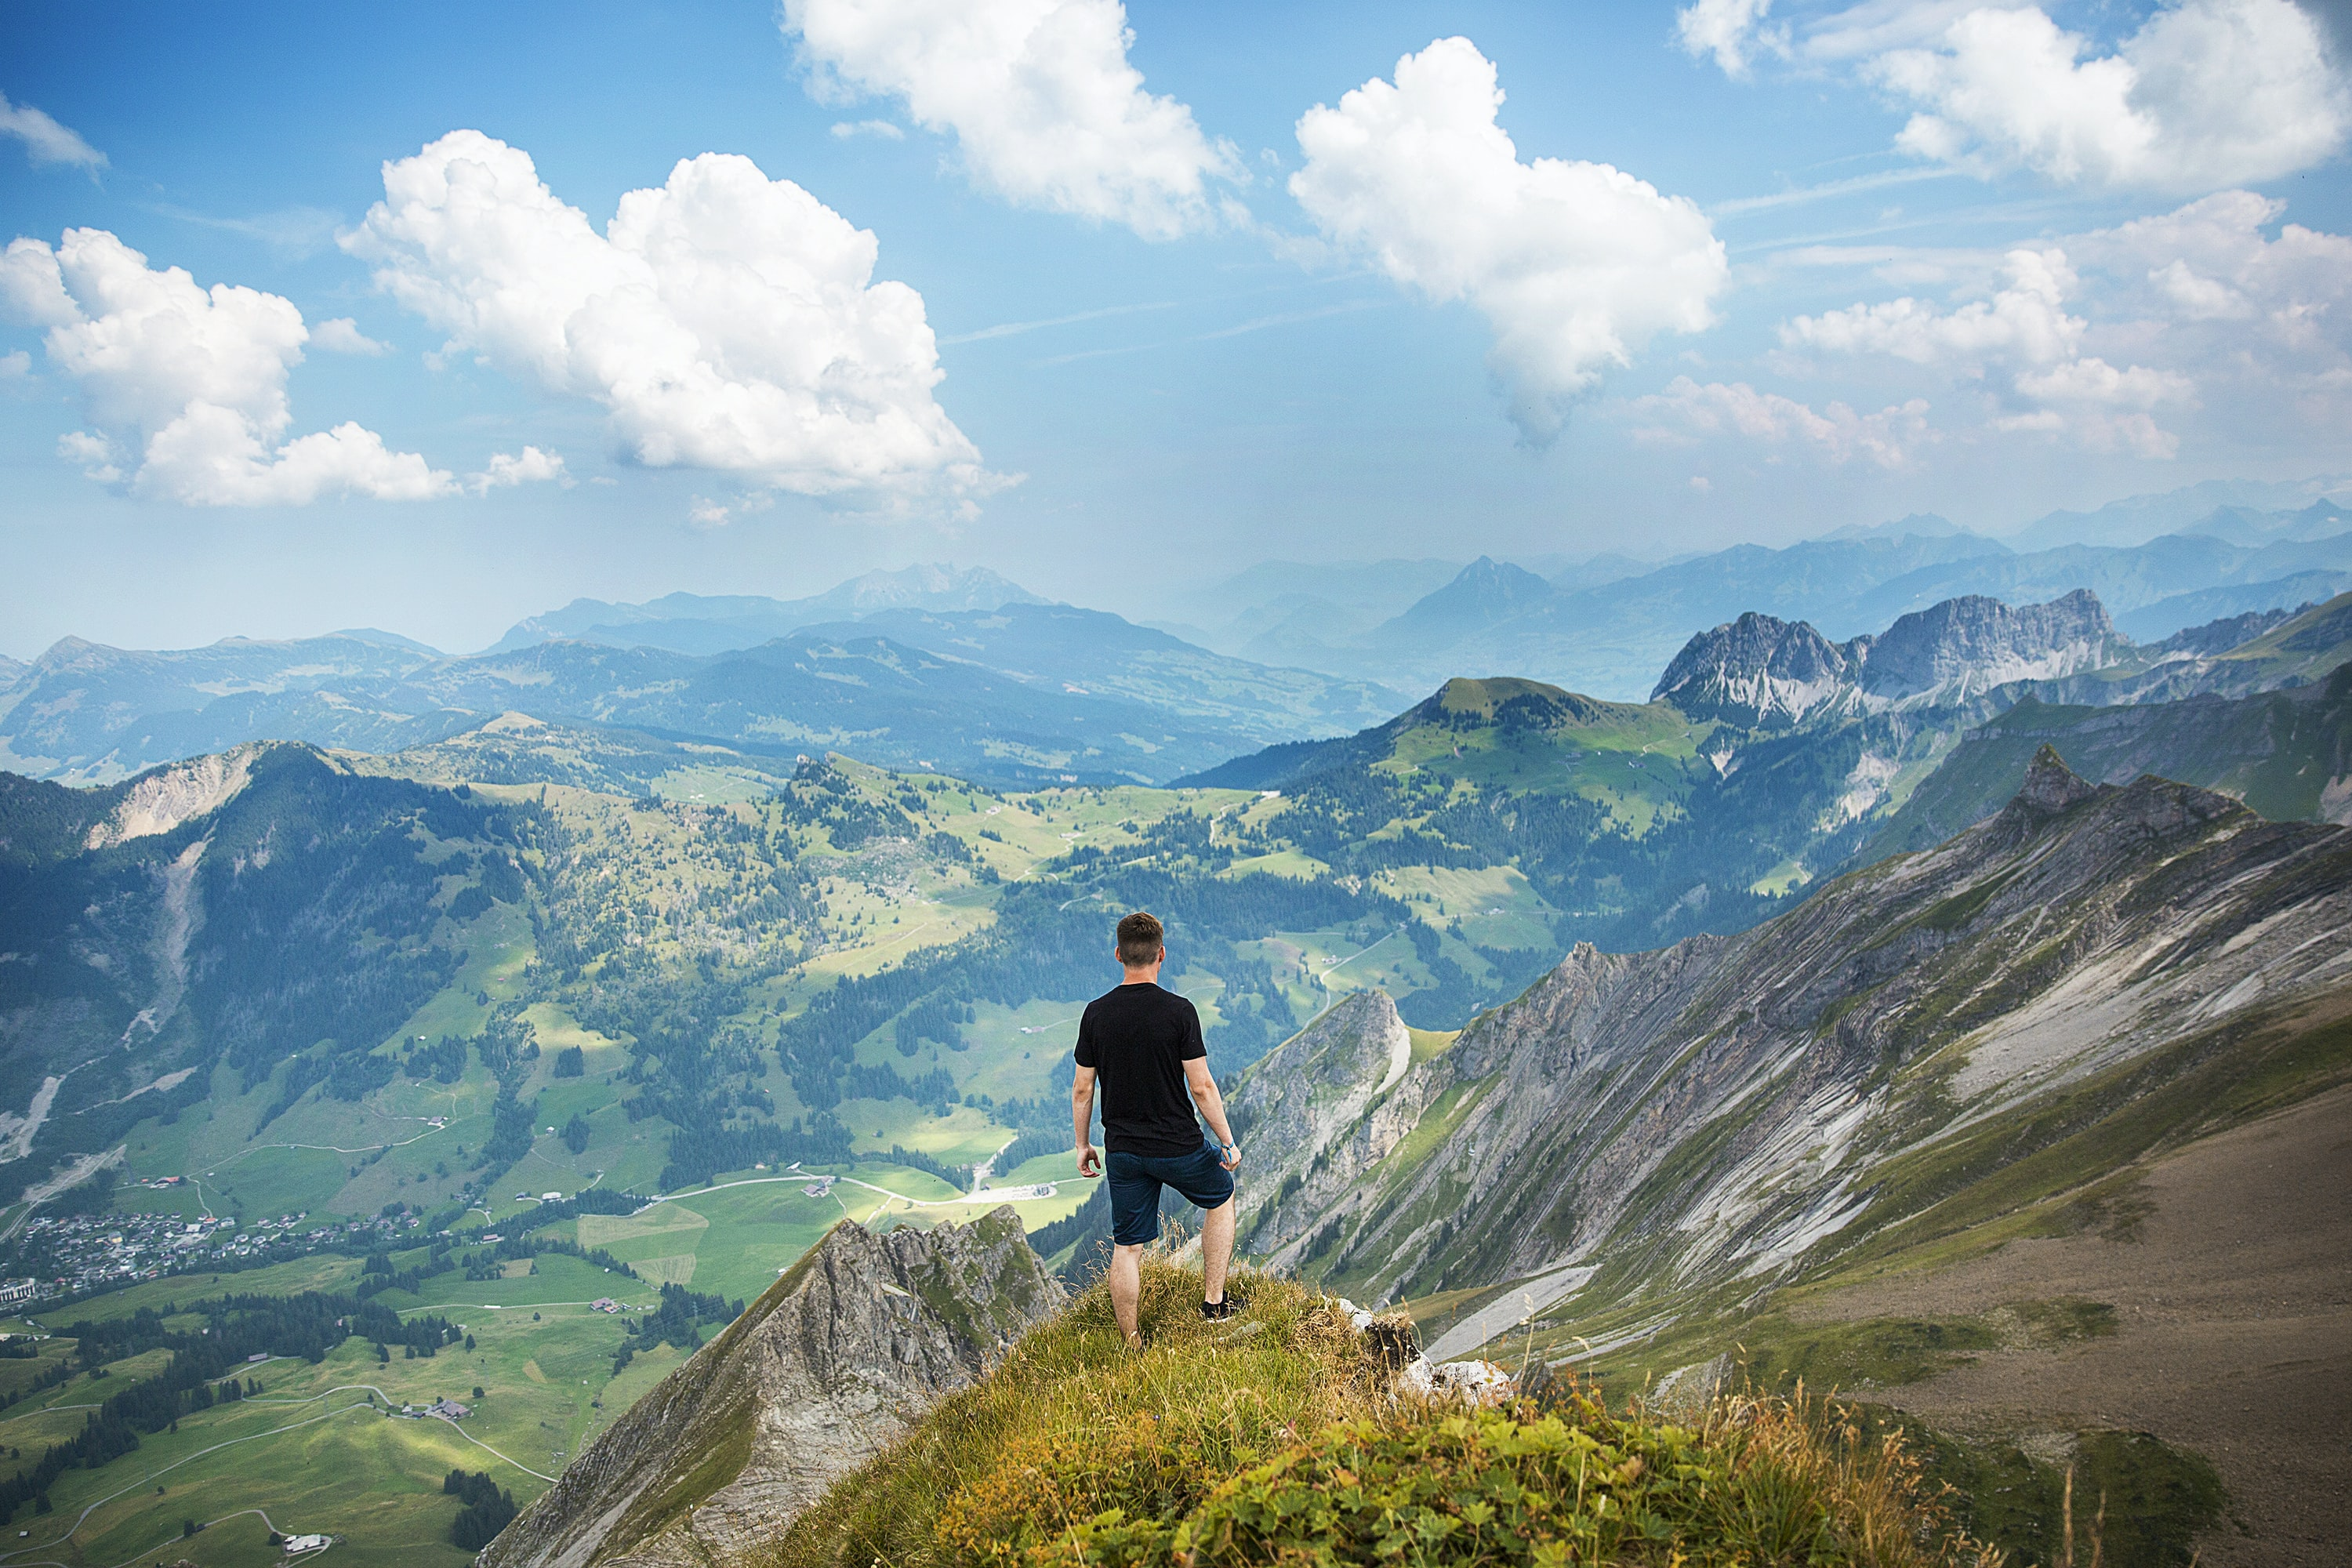 A male hiker standing on a grassy ledge overlooking a rural mountain valley